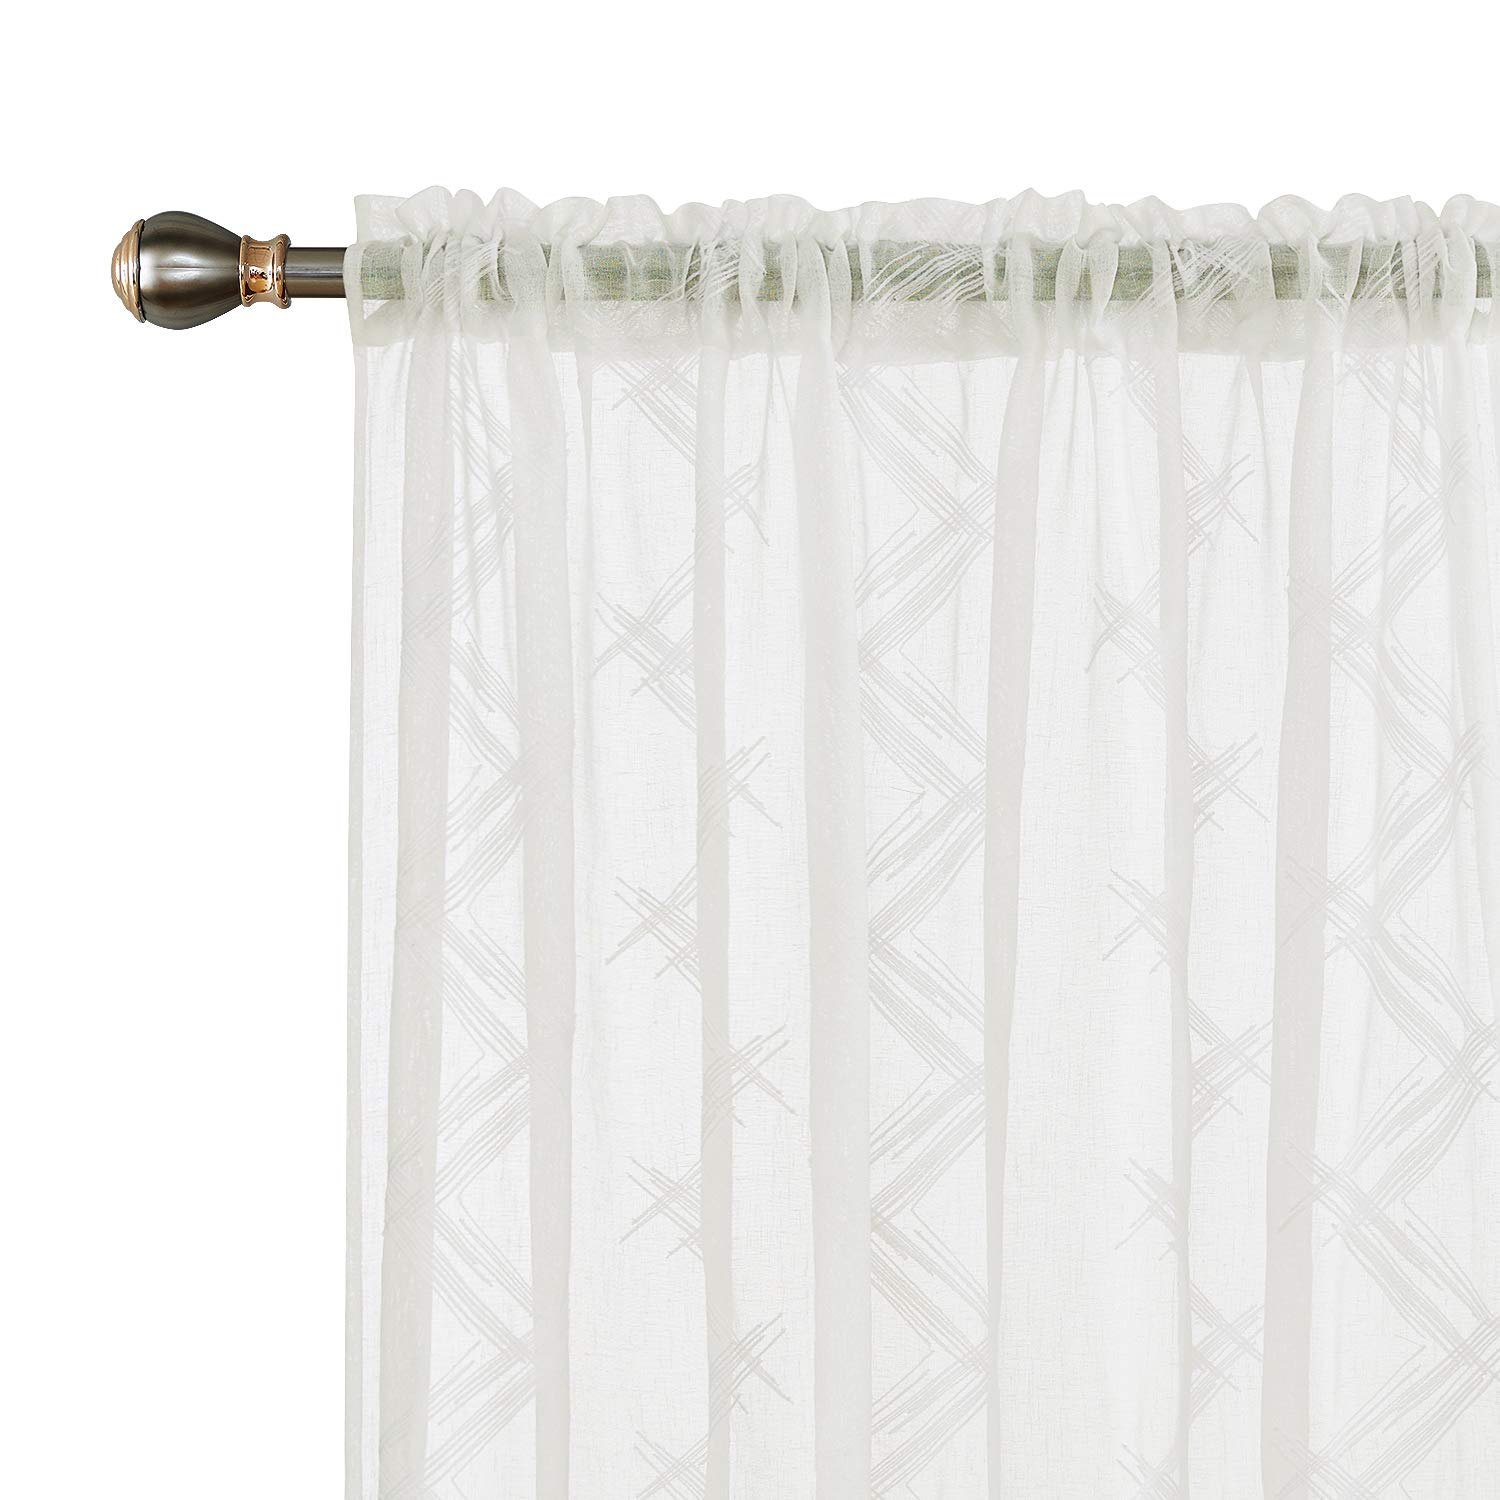 Deconovo Sheer Curtains Embroidered Patterned Semi Faux Linen Rod Pocket Curtains for Living Room 52x84 Inch Beige